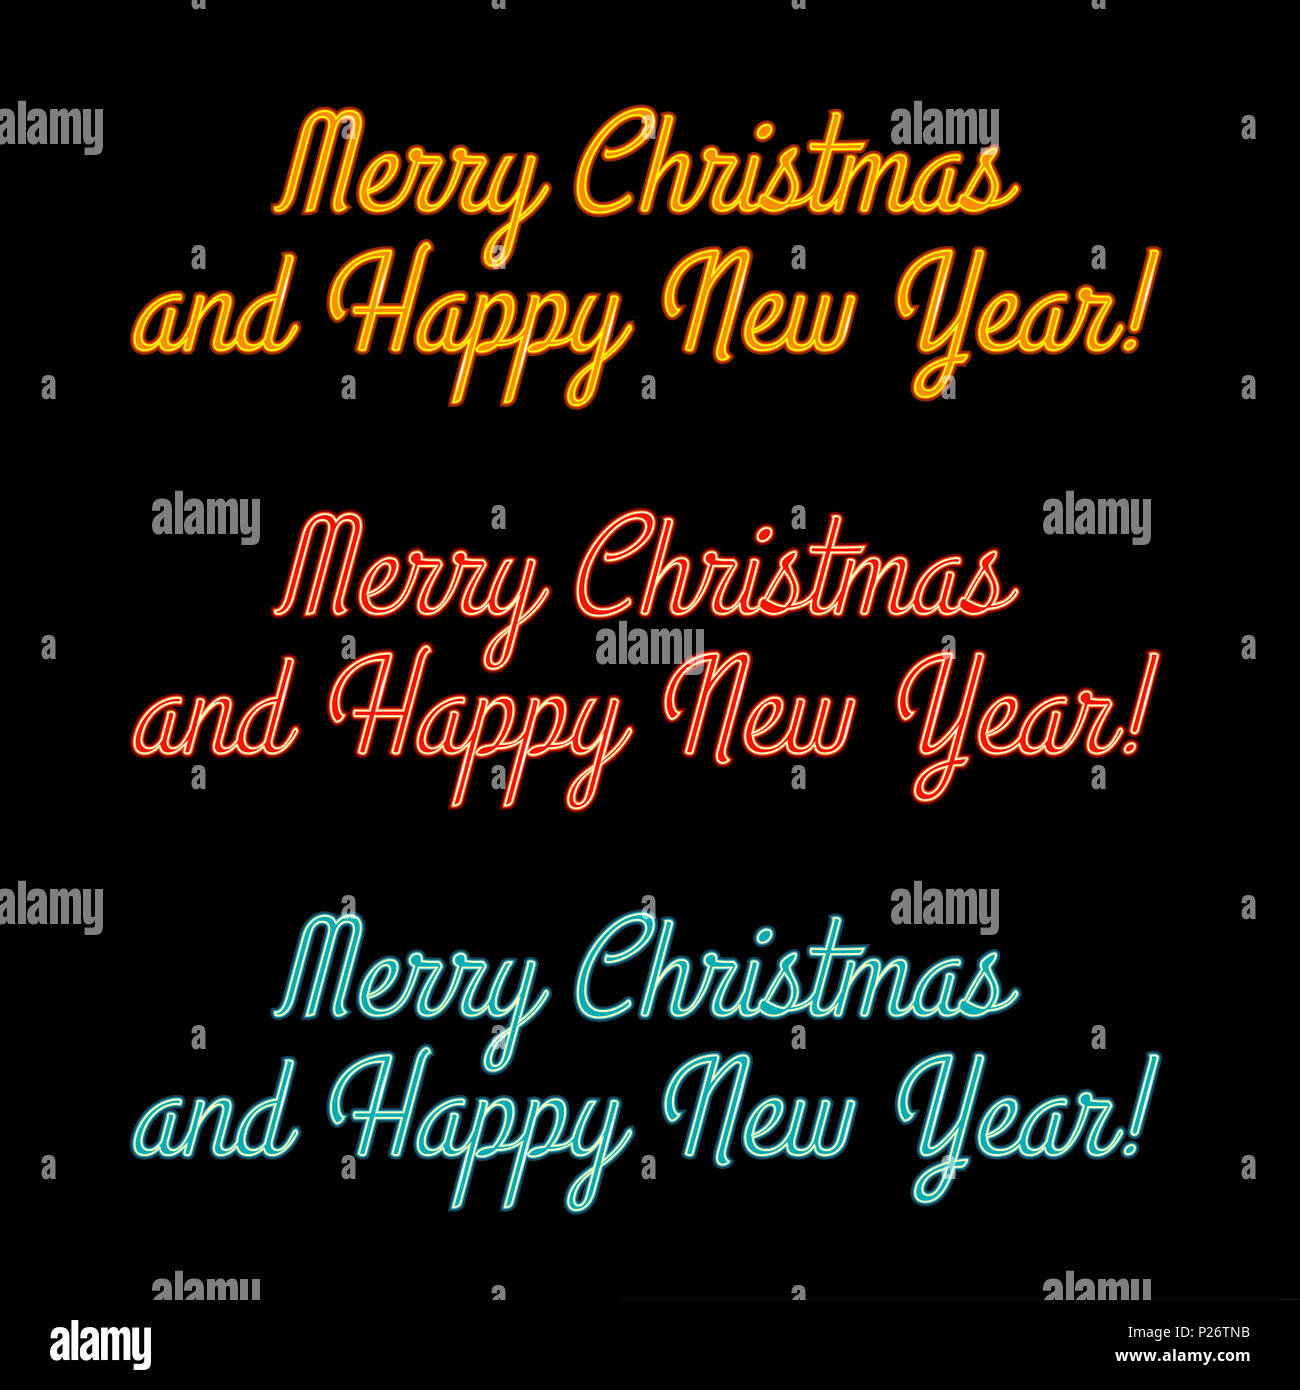 Merry christmas and a happy new year yellow red blue glowing neon merry christmas and a happy new year yellow red blue glowing neon signs for greeting card banner poster brochure illustration m4hsunfo